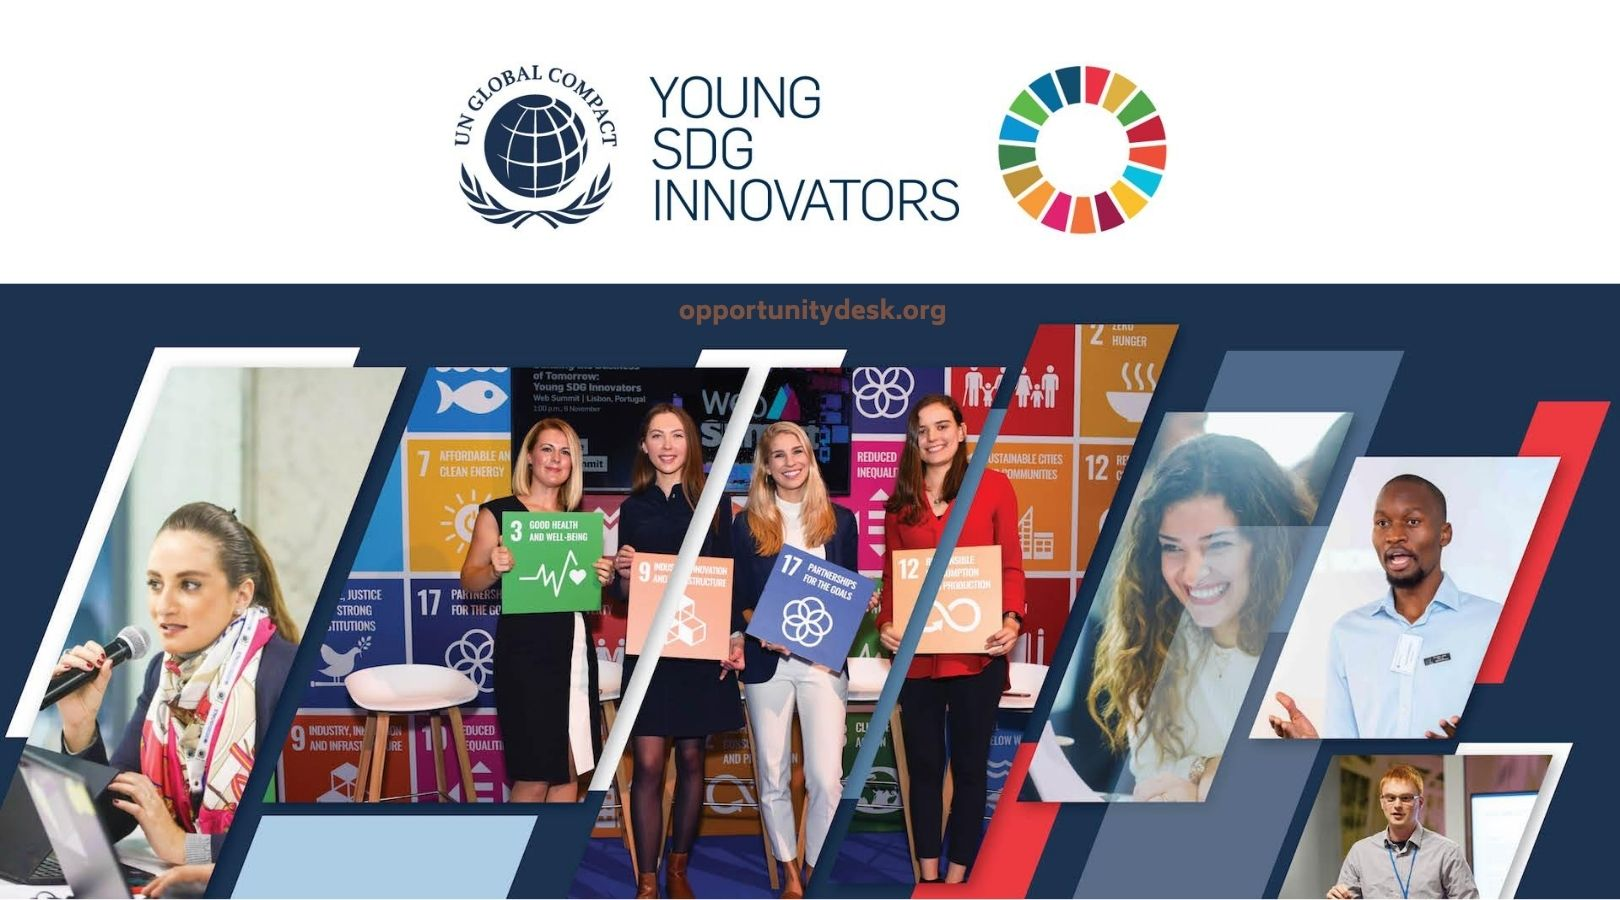 UN Global Compact Young SDG Innovators Programme 2020 Call for Nominations